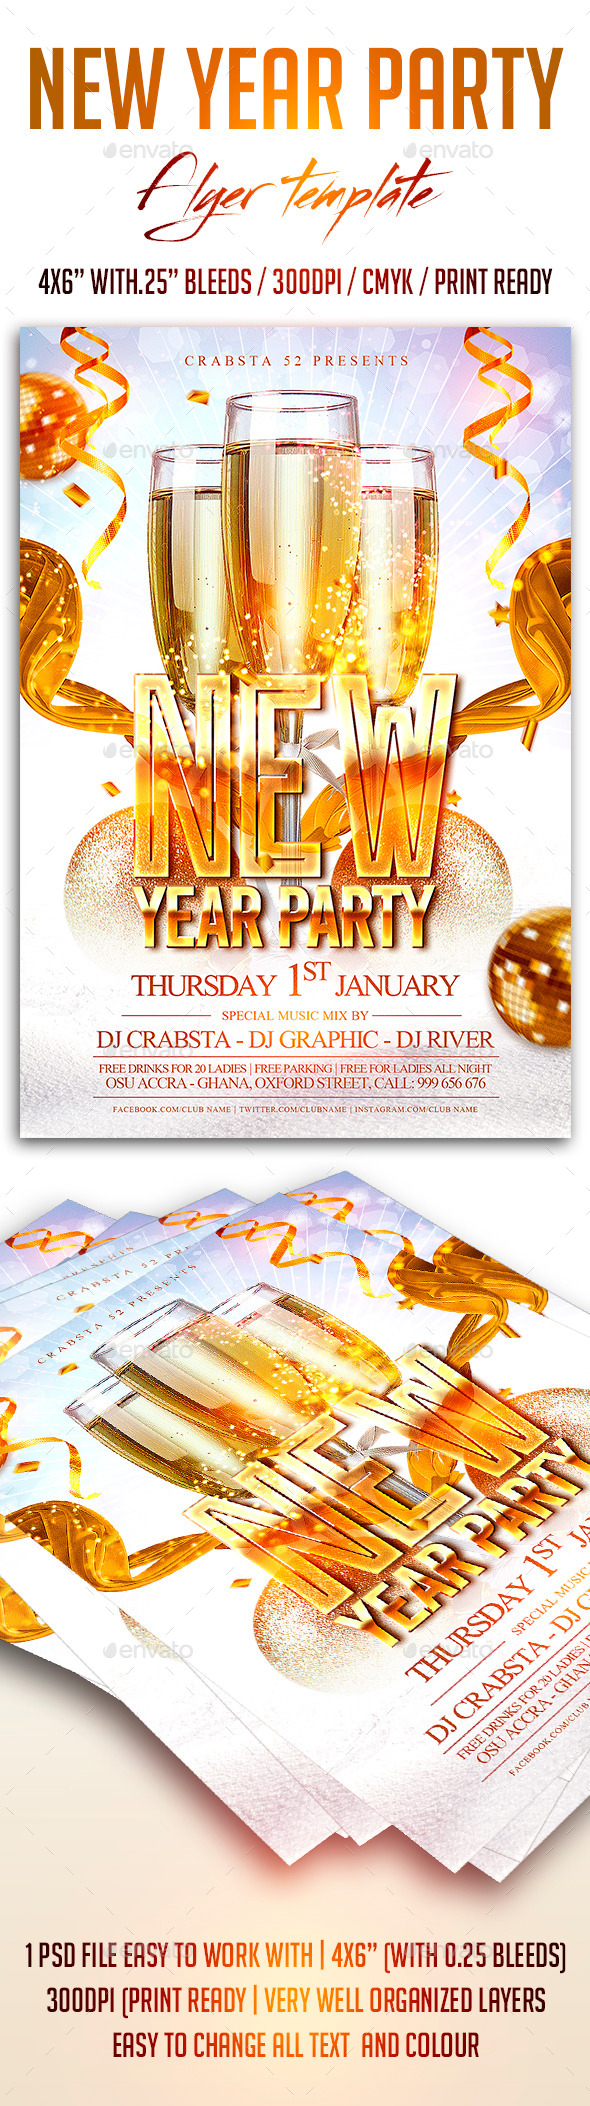 GraphicRiver New Year Party Flyer Template 9844219